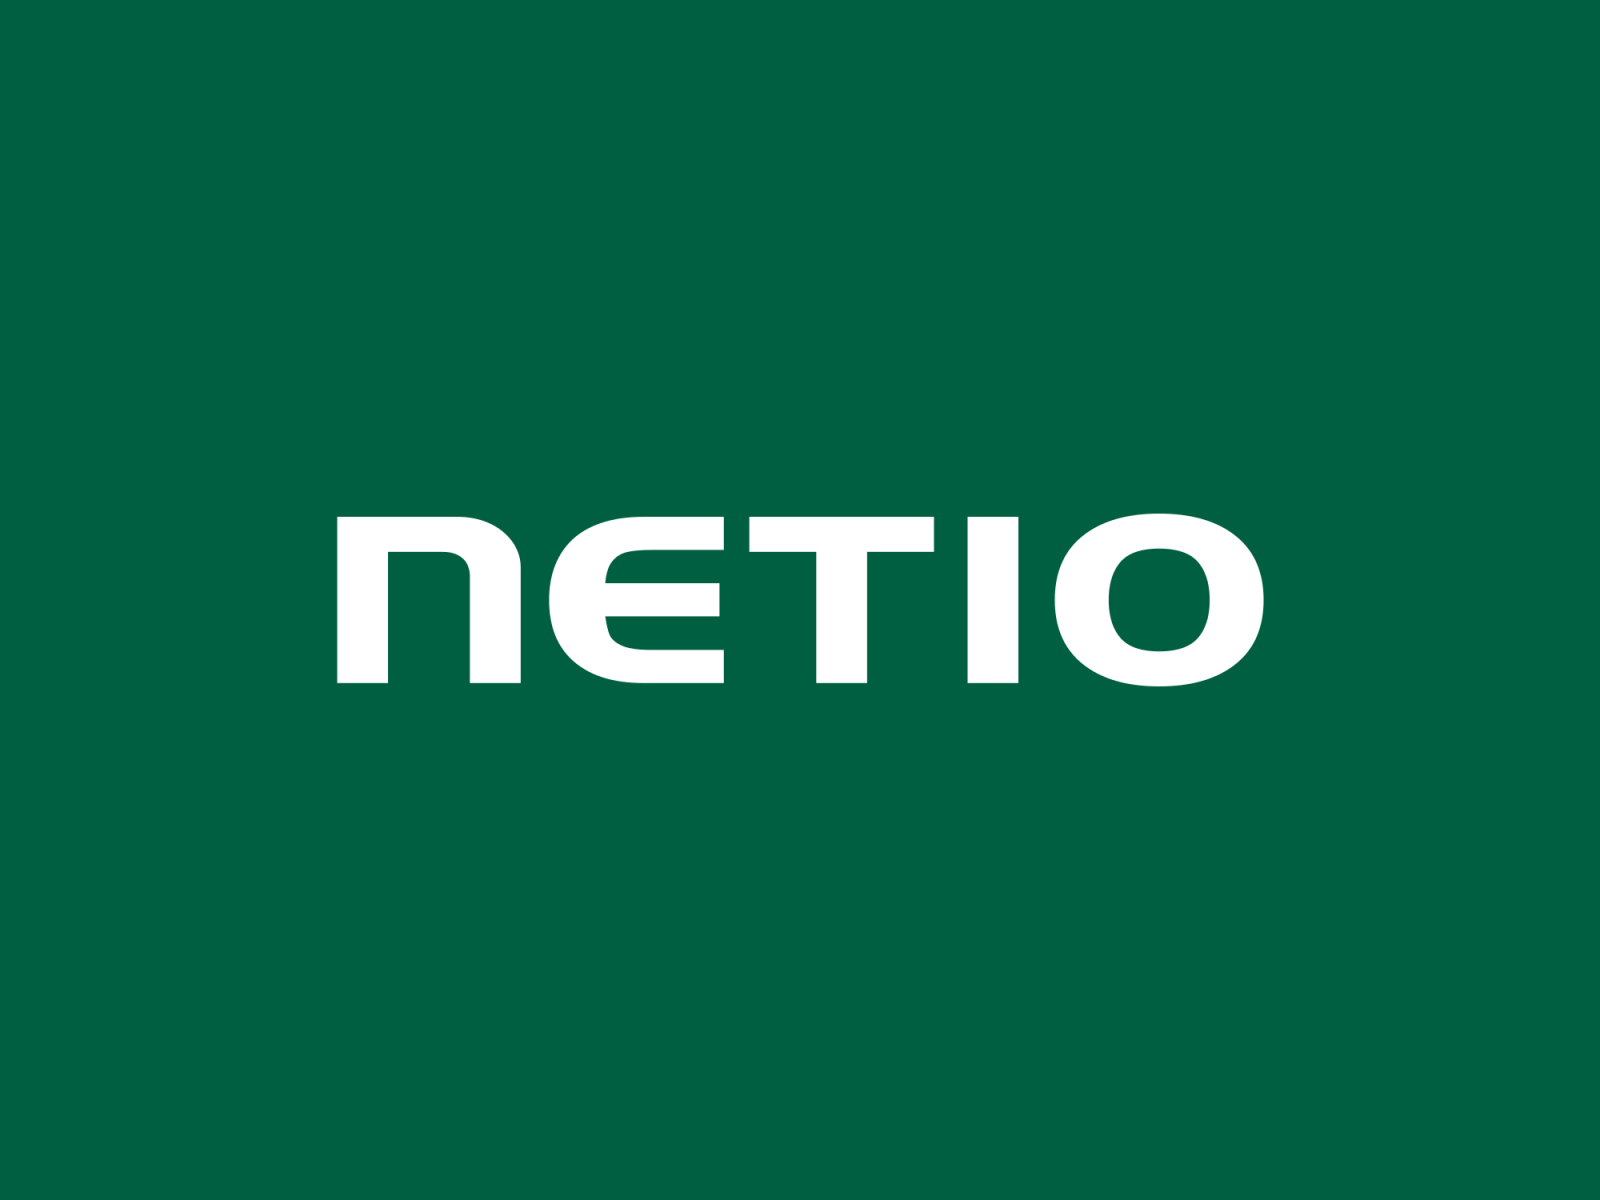 NETIO products company logo with green background